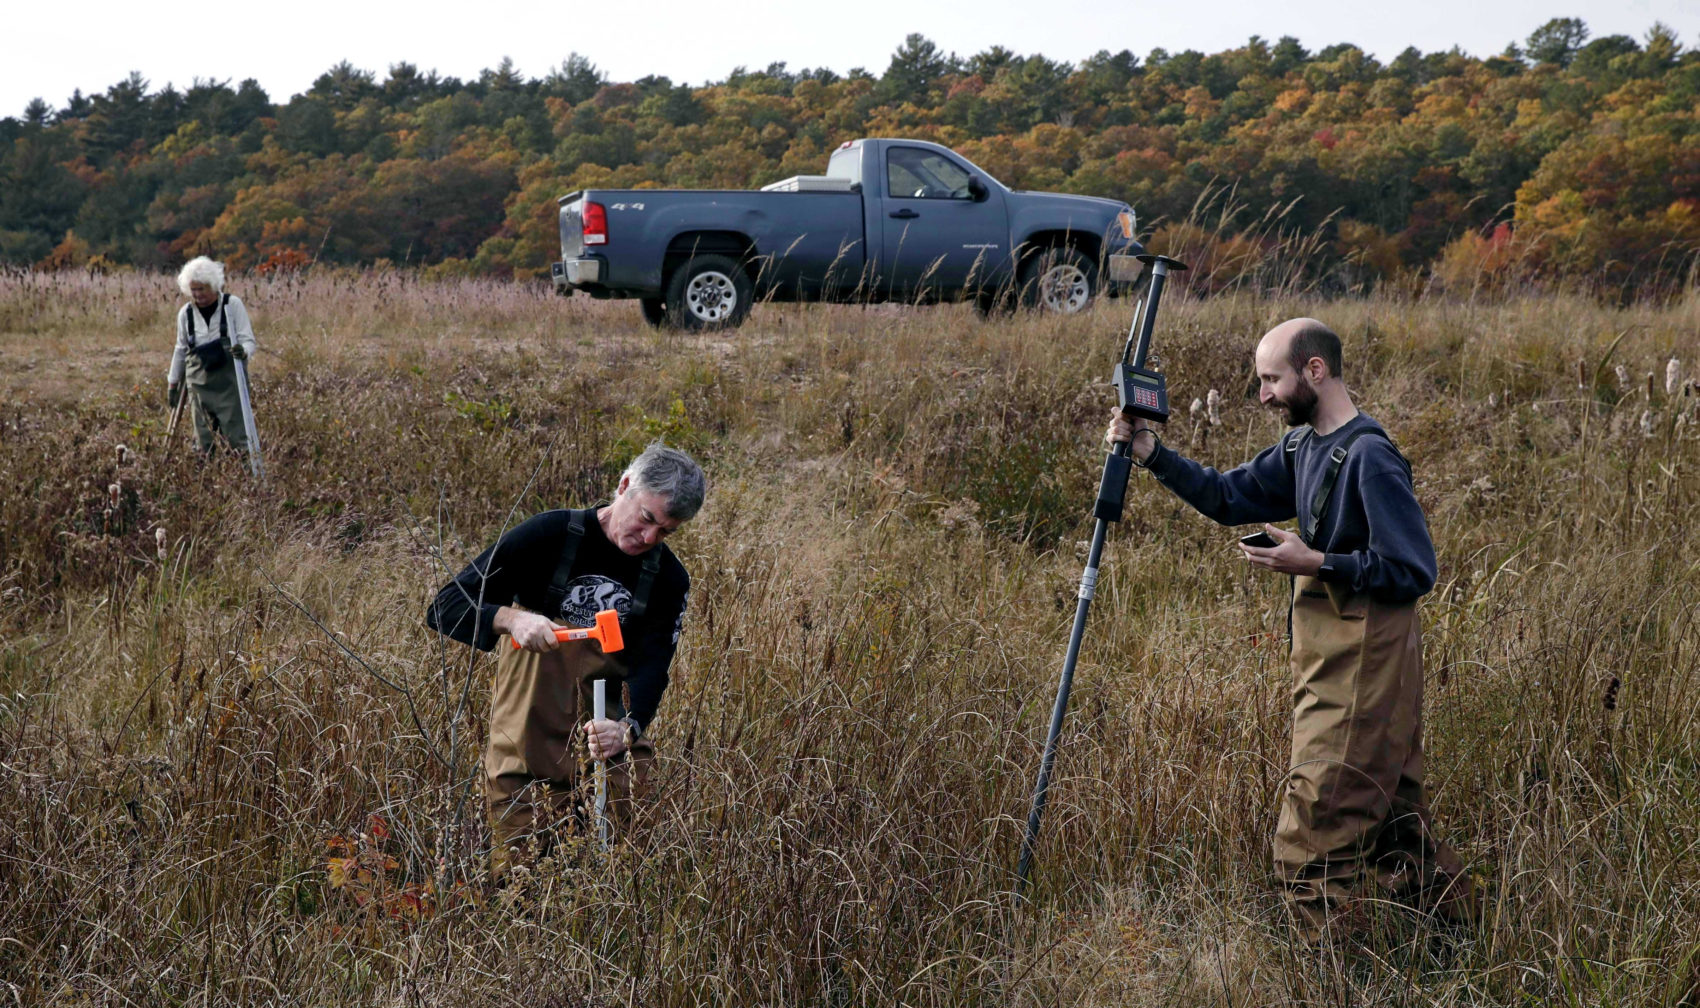 In this Thursday Nov. 1, 2018 photo, Joe Paradiso, Director of the Responsive Environment group at the MIT Media Lab, center, drives a support post for a sensor unit as Brian Mayton, a research assistant at the Responsive Environment group, right, prepares to map the device's global position at a marshland in Plymouth, Mass., which is equipped with wireless sensors, cameras and microphones to create a virtual reality world inspired by nature's rhythms. Researchers at the Massachusetts Institute of Technology hope that by live-streaming data, sights and sounds at the Tidmarsh Wildlife Sanctuary, they can help scientists understand wildlife restoration techniques and let other virtual visitors experience nature remotely. At rear left is Glorianna Davenport, president of the Living Observatory and co-founder of the MIT Media Lab. (Charles Krupa/AP)